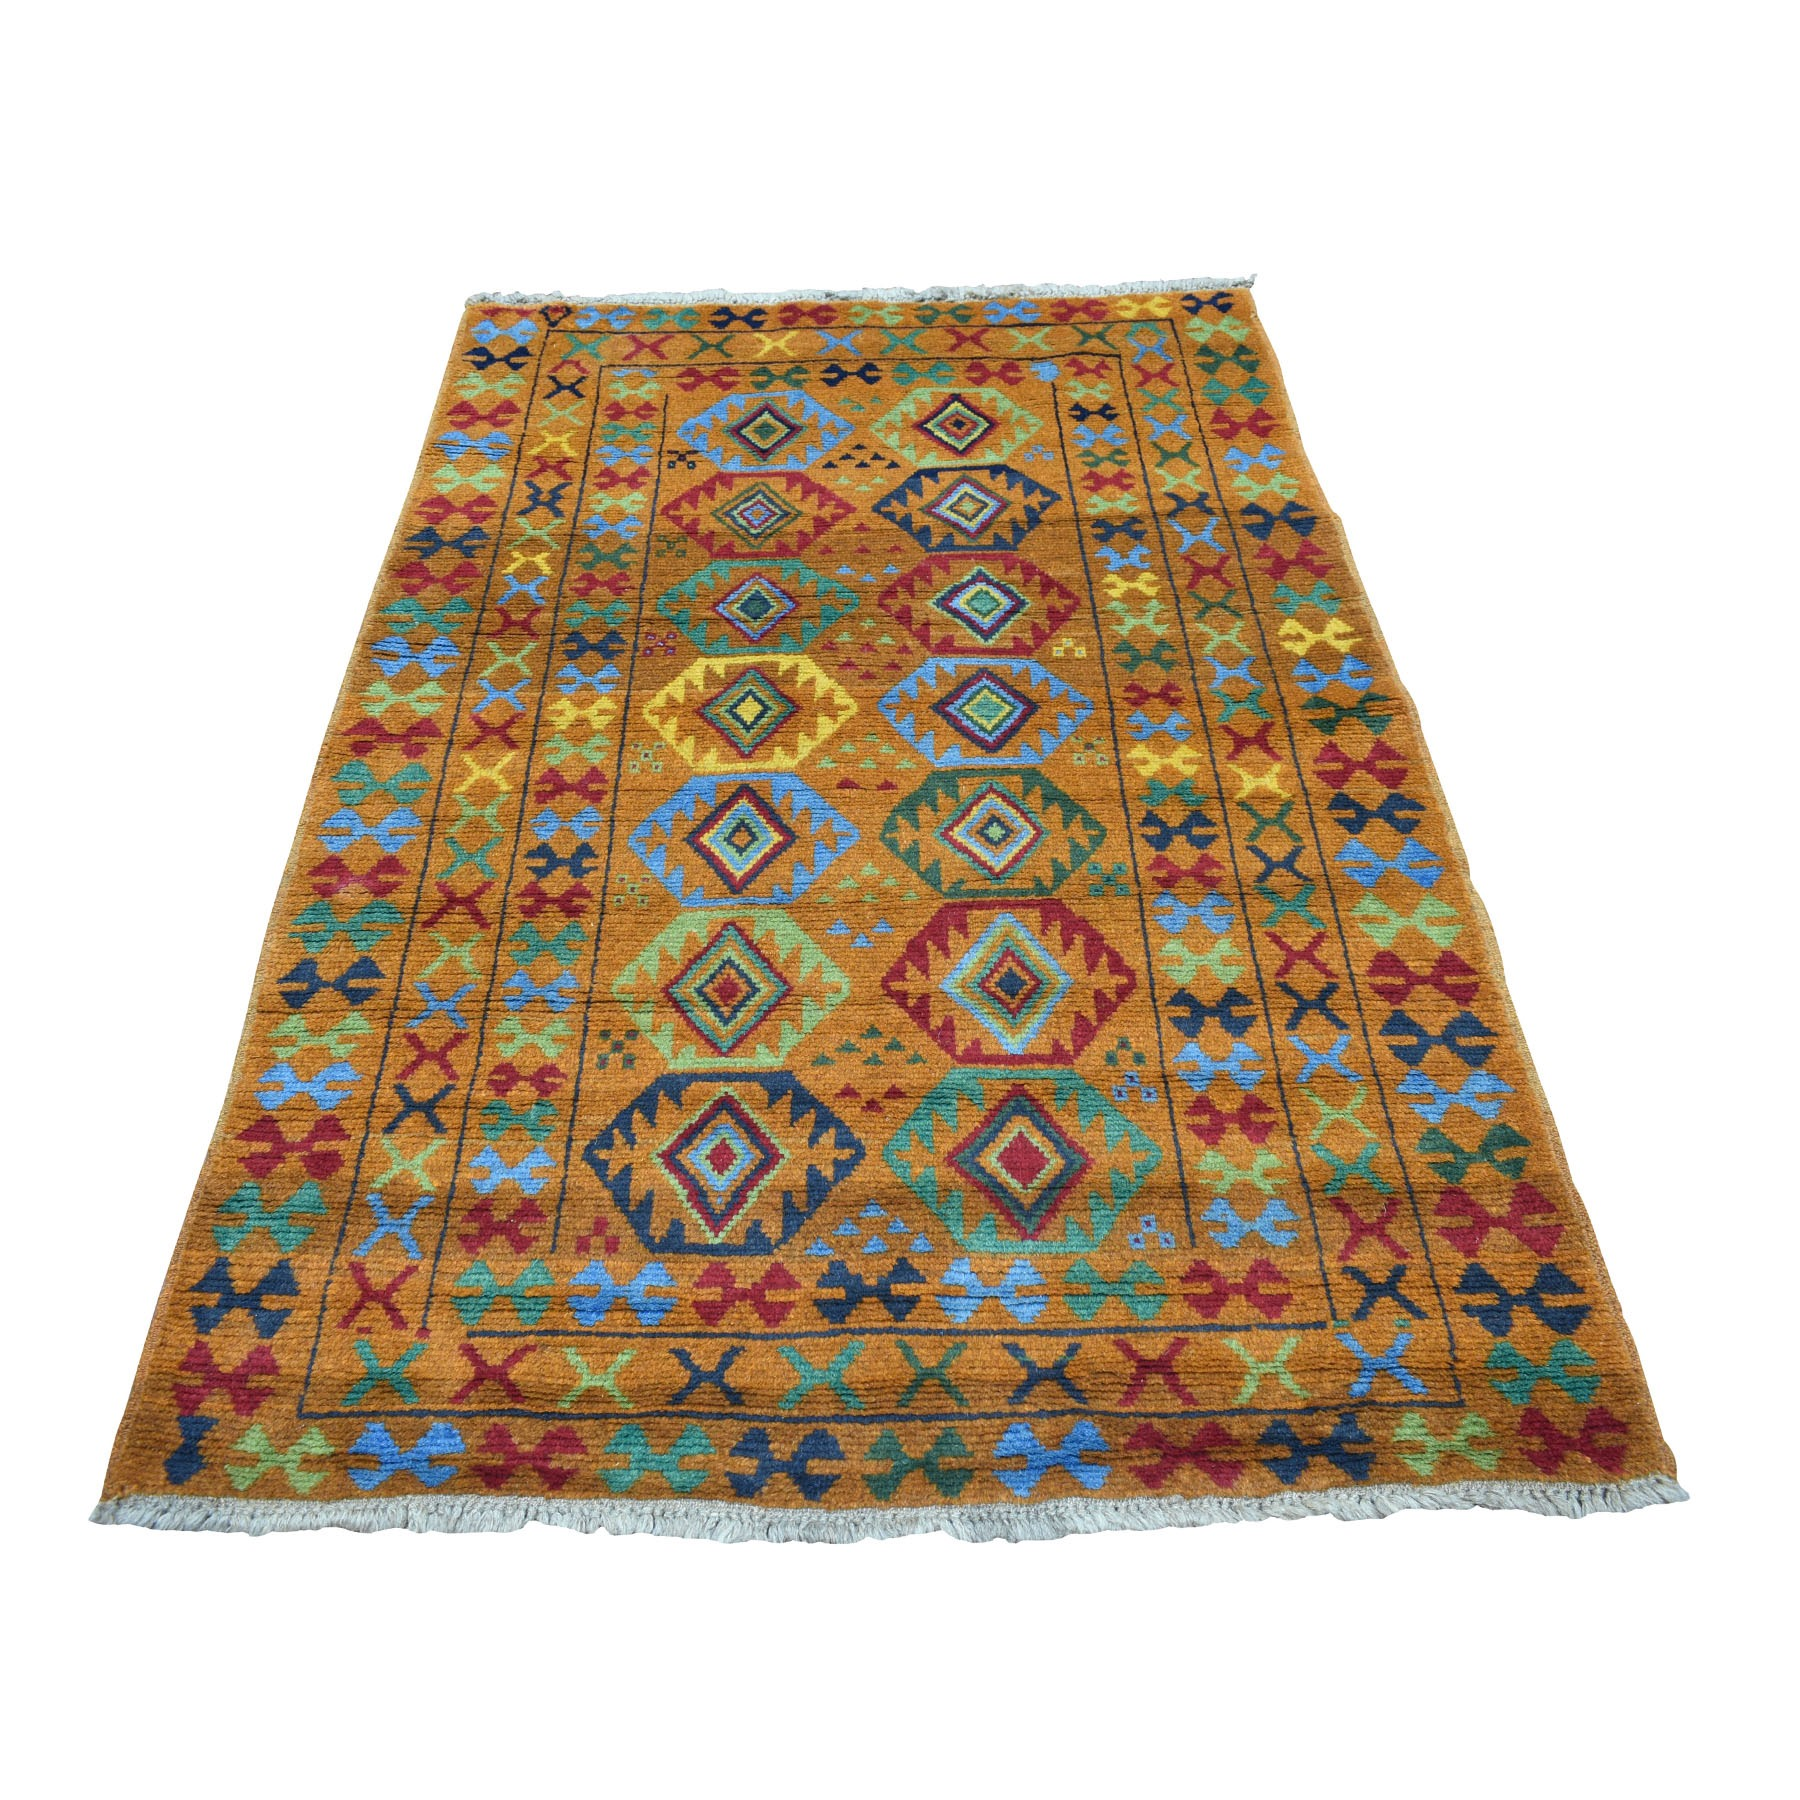 "4'3""x6' Orange Colorful Afghan Baluch Tribal Design Hand Woven Pure Wool Oriental Rug"